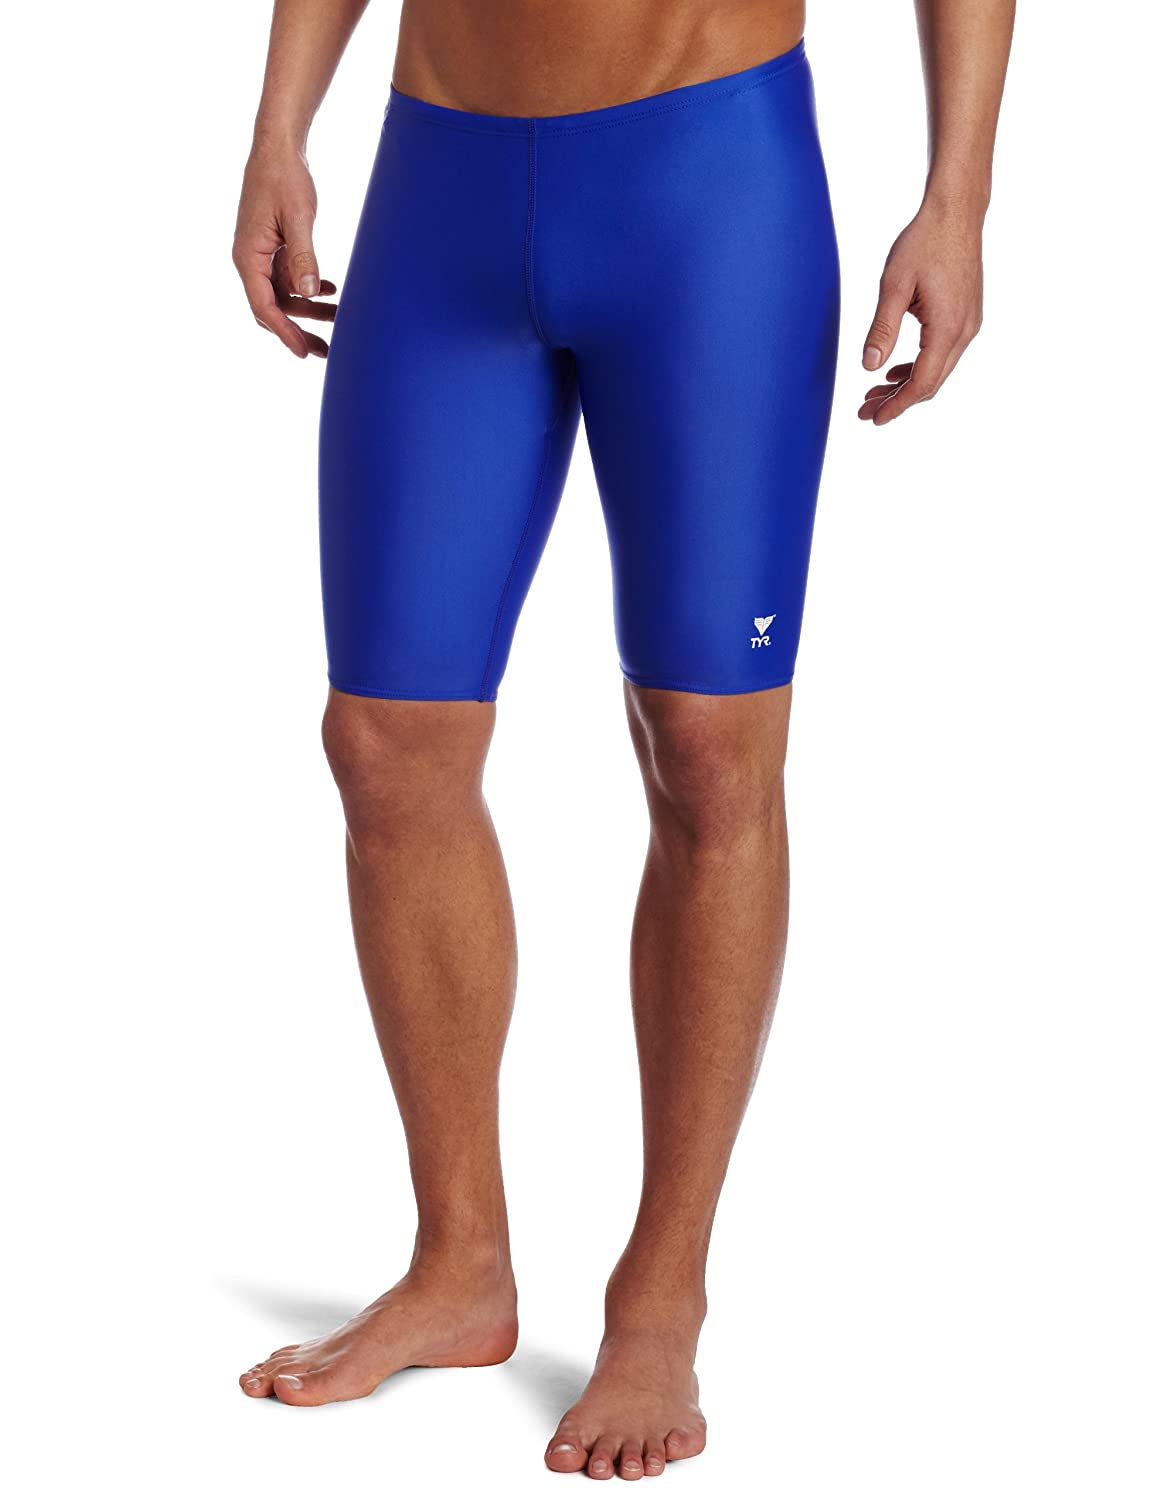 TYR Sport Men's Solid Jammer Swim Suit RJAM1A